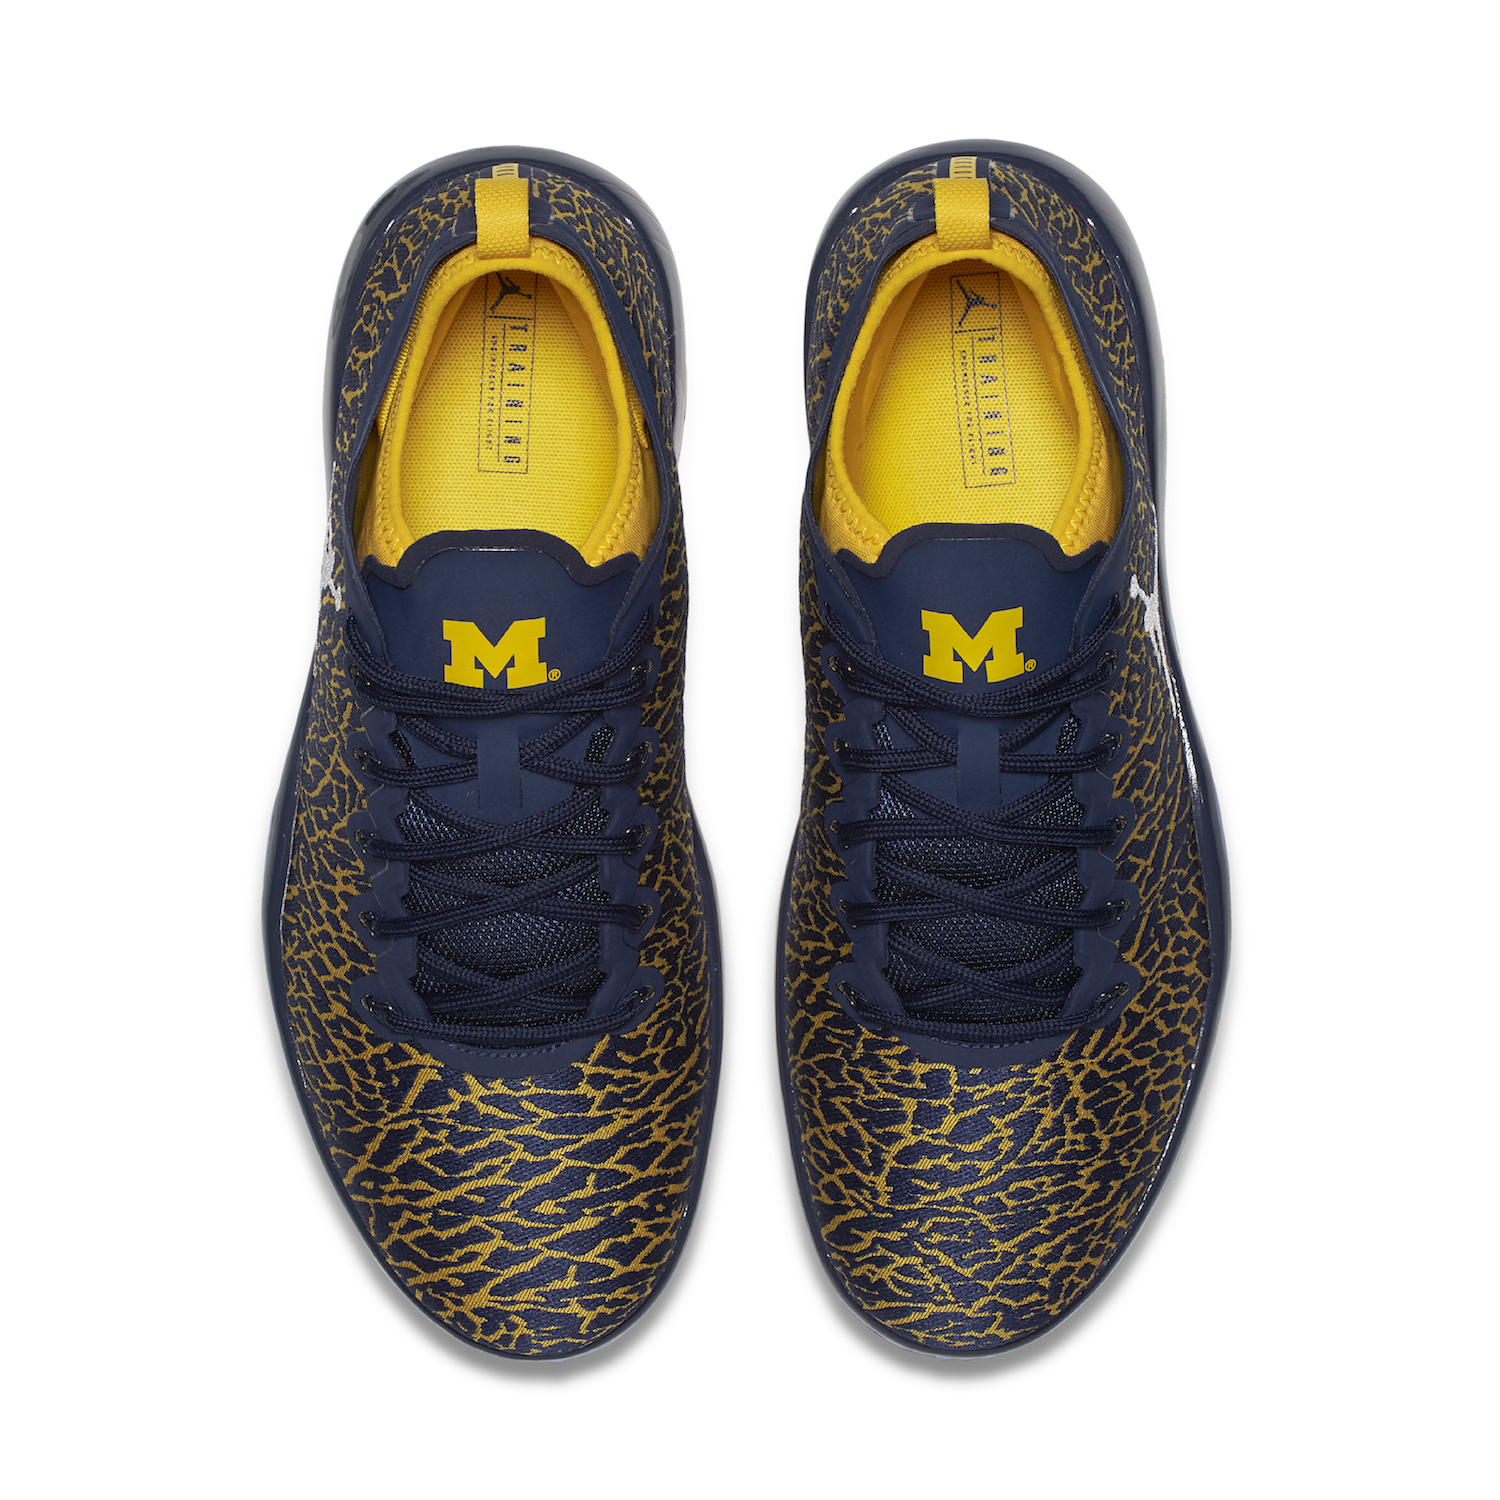 university of michigan jordan brand 11